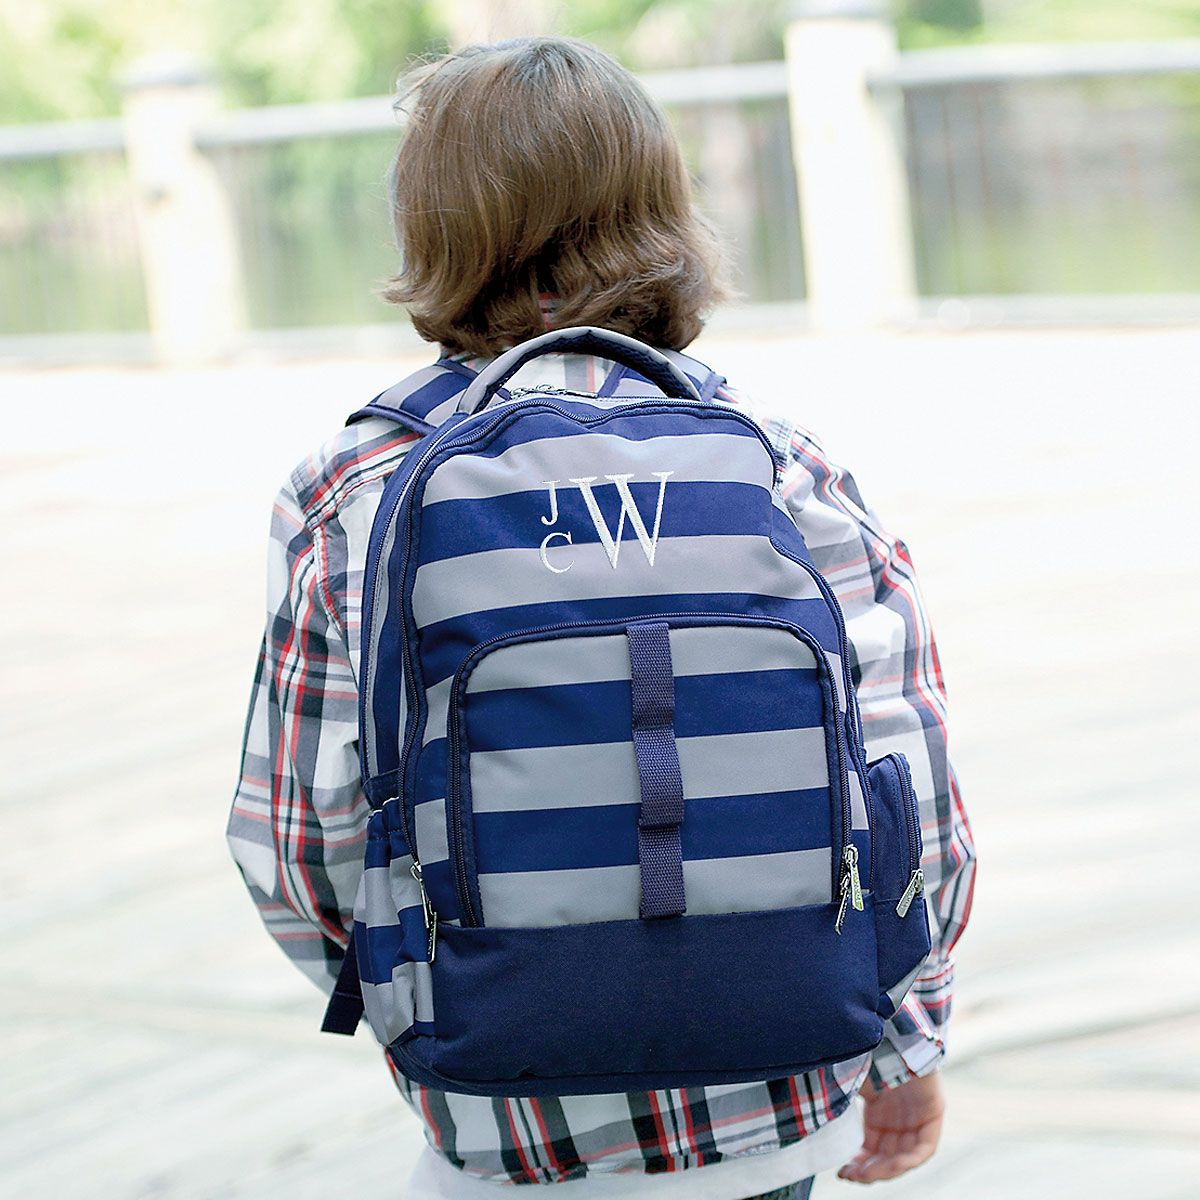 Personalized Greyson Backpack